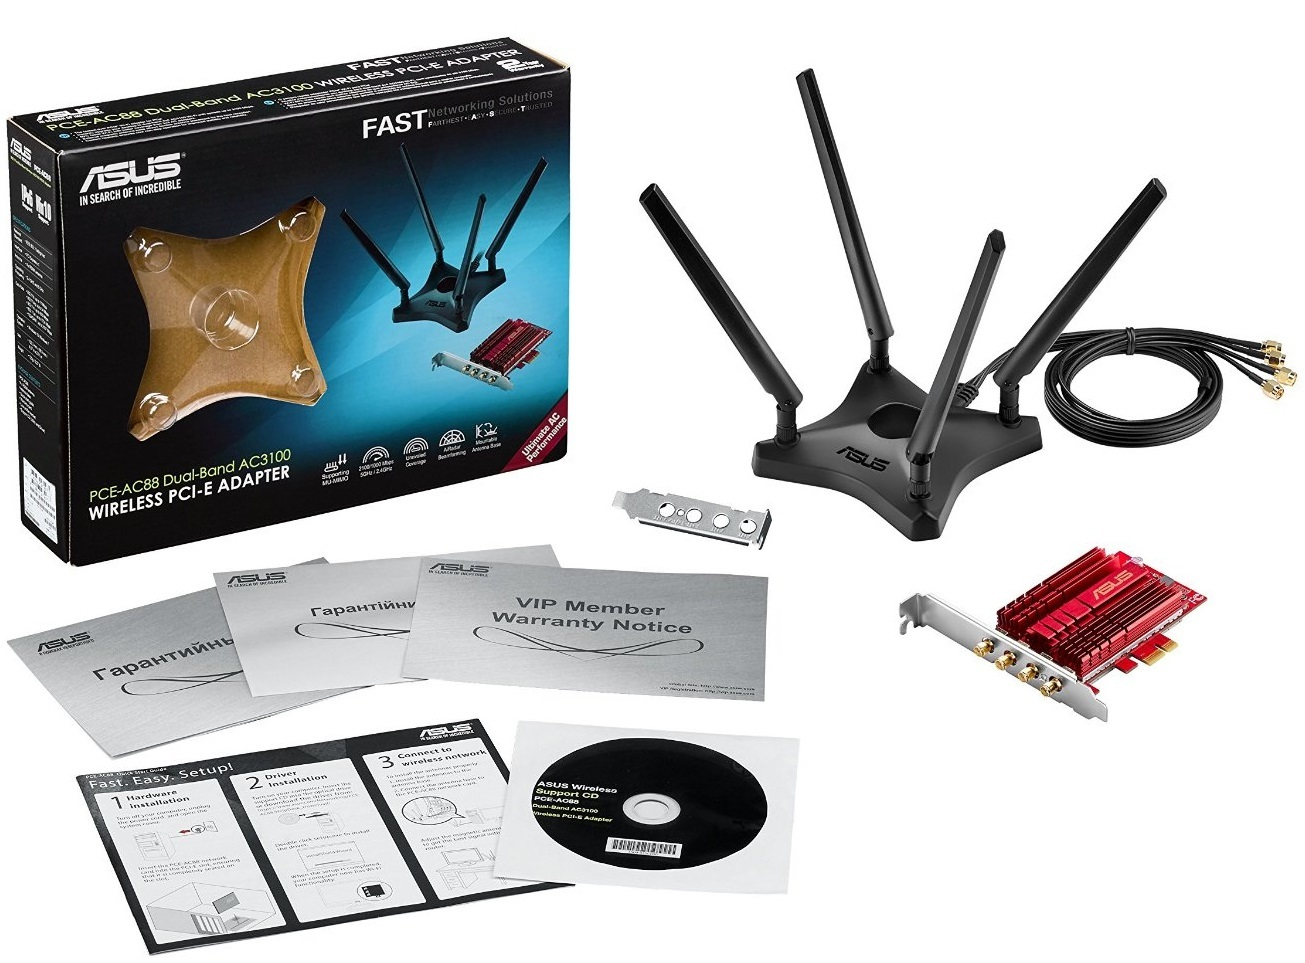 ASUS PCE-AC88 AC3100 Wi-Fi PCIe Adapter image